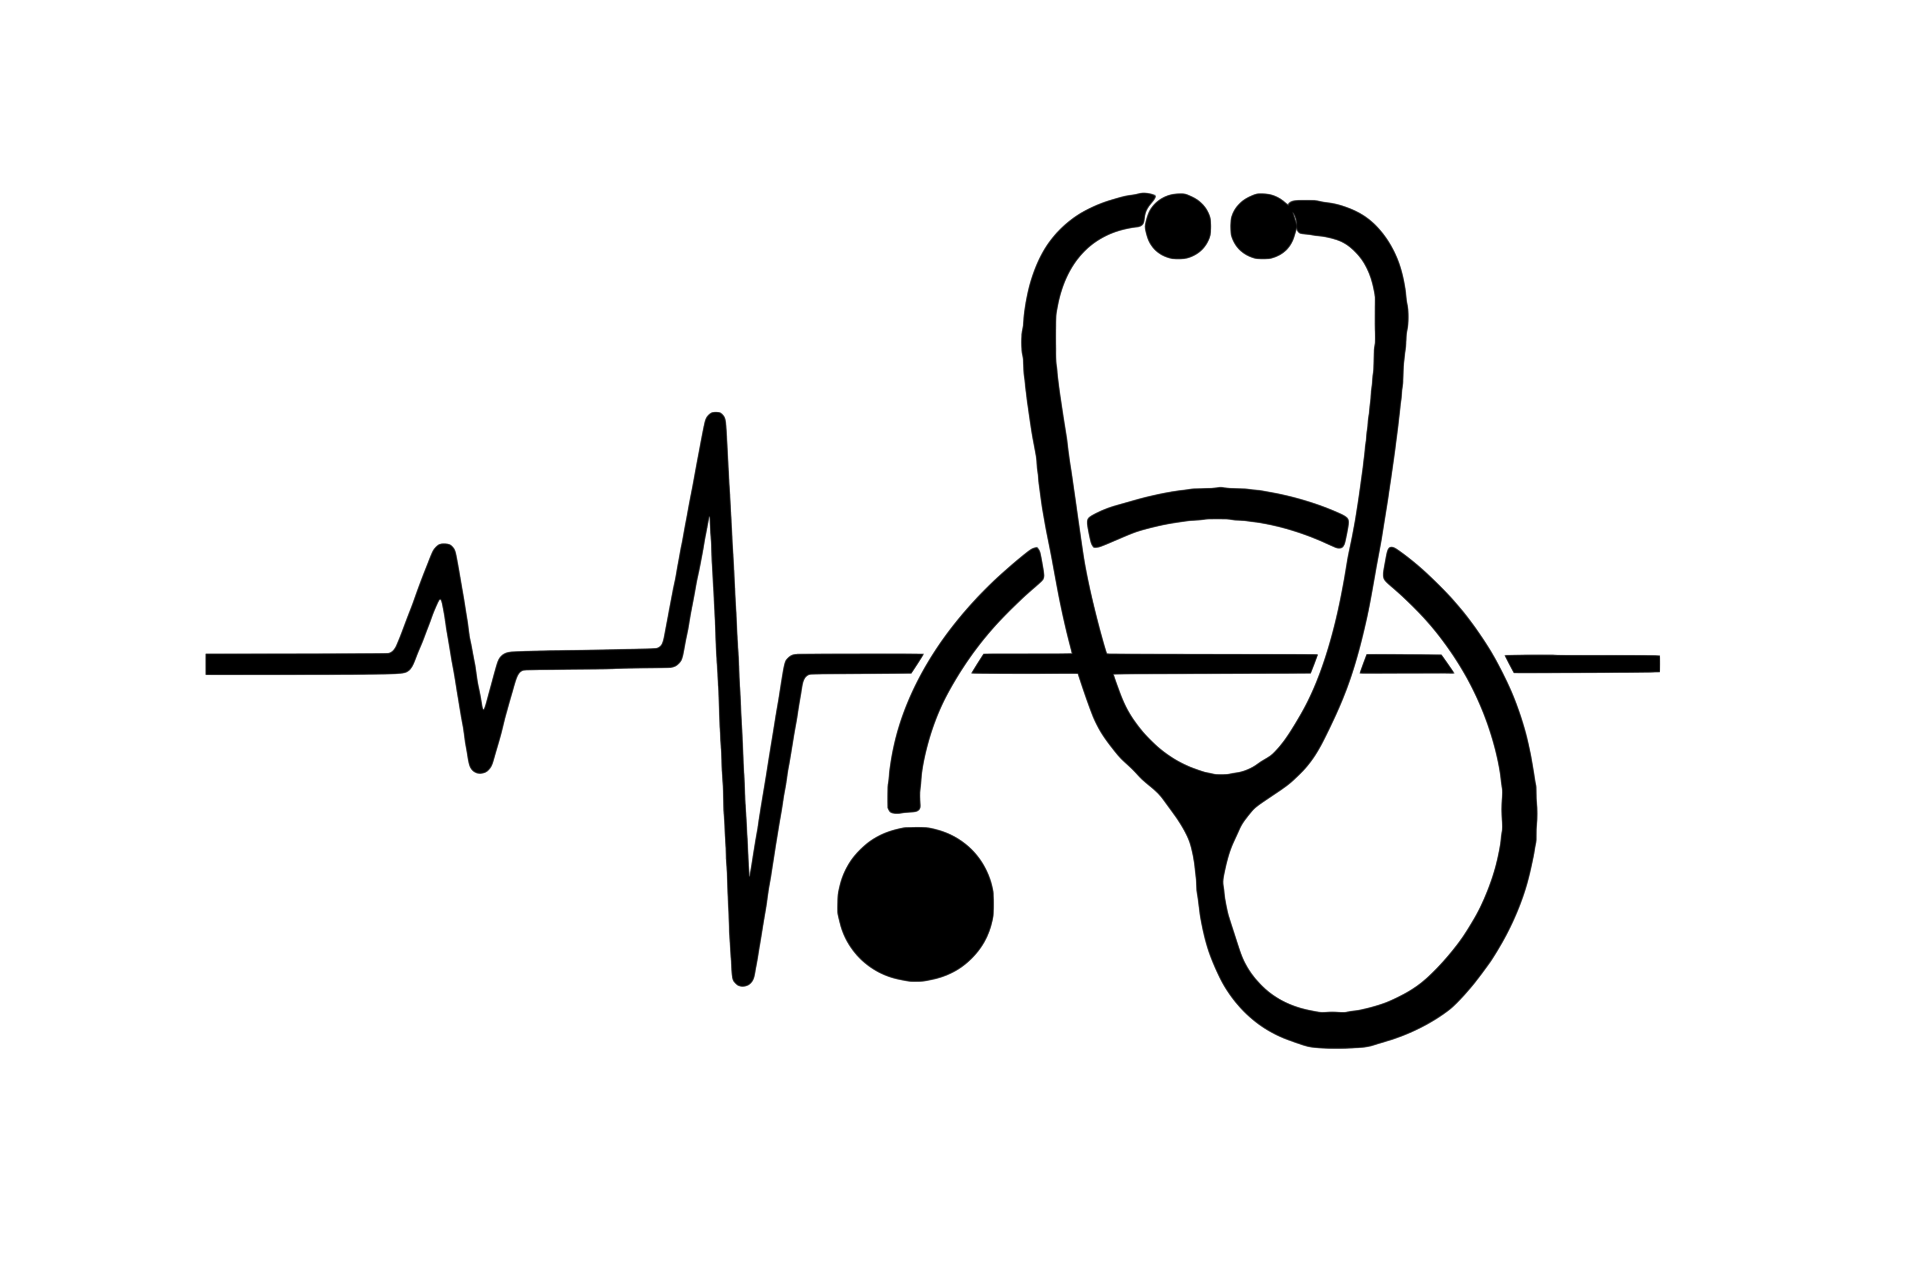 stethoscope-3725131.png